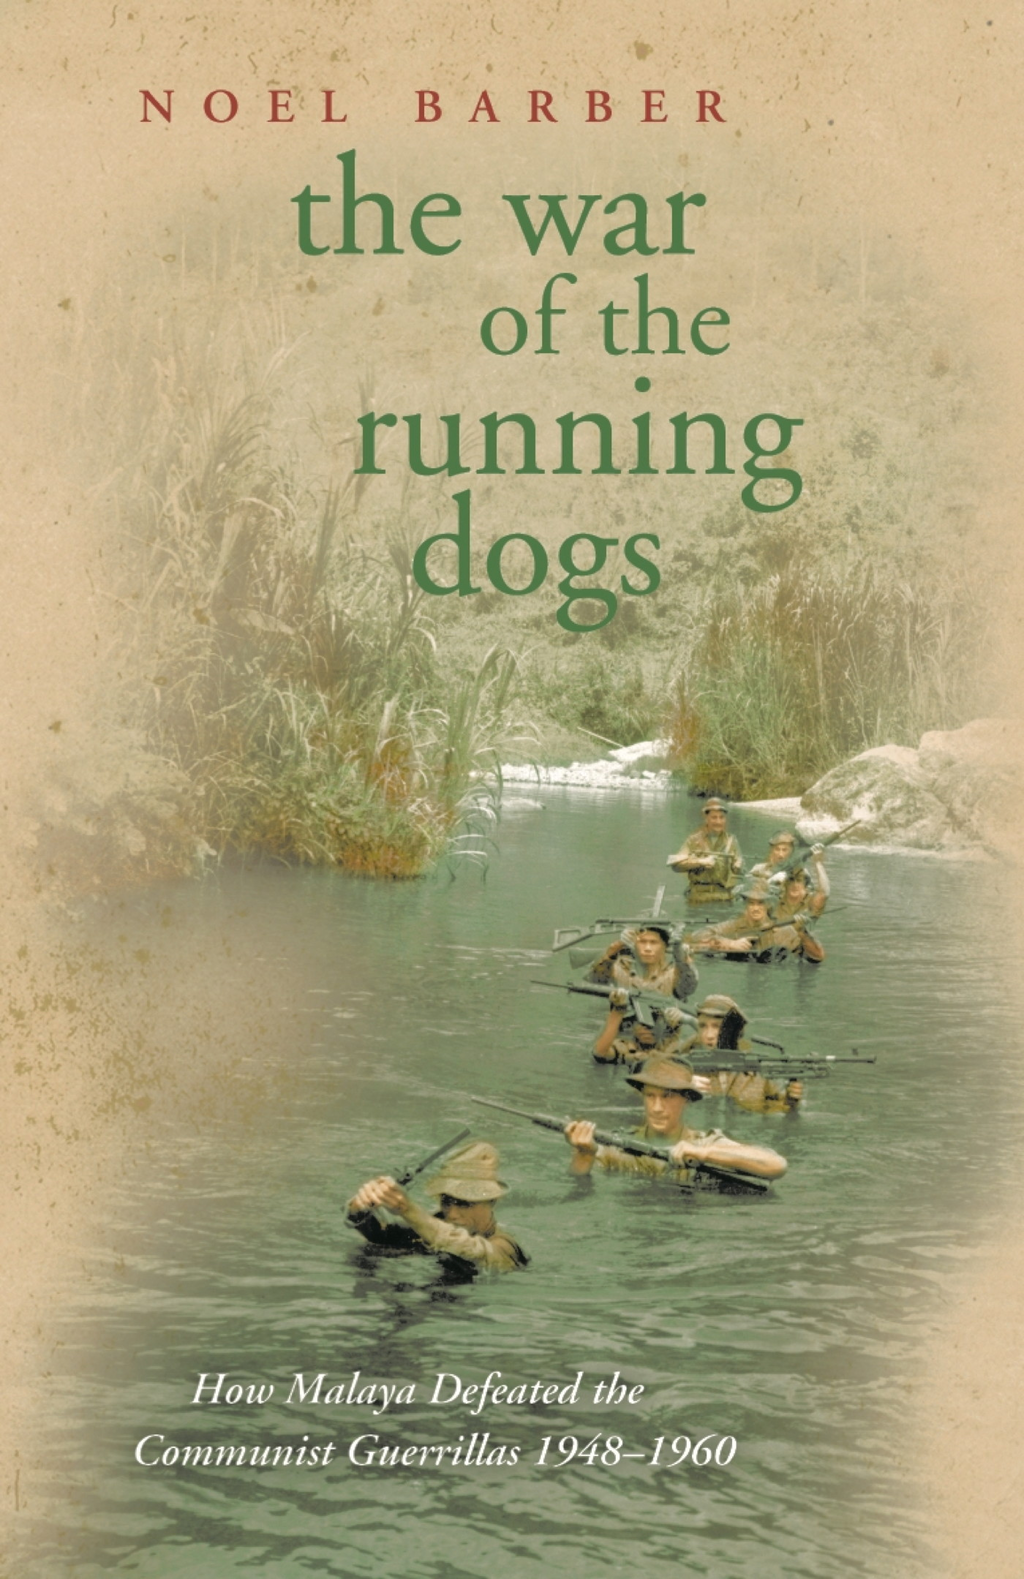 The War of the Running Dogs Malaya 1948-1960